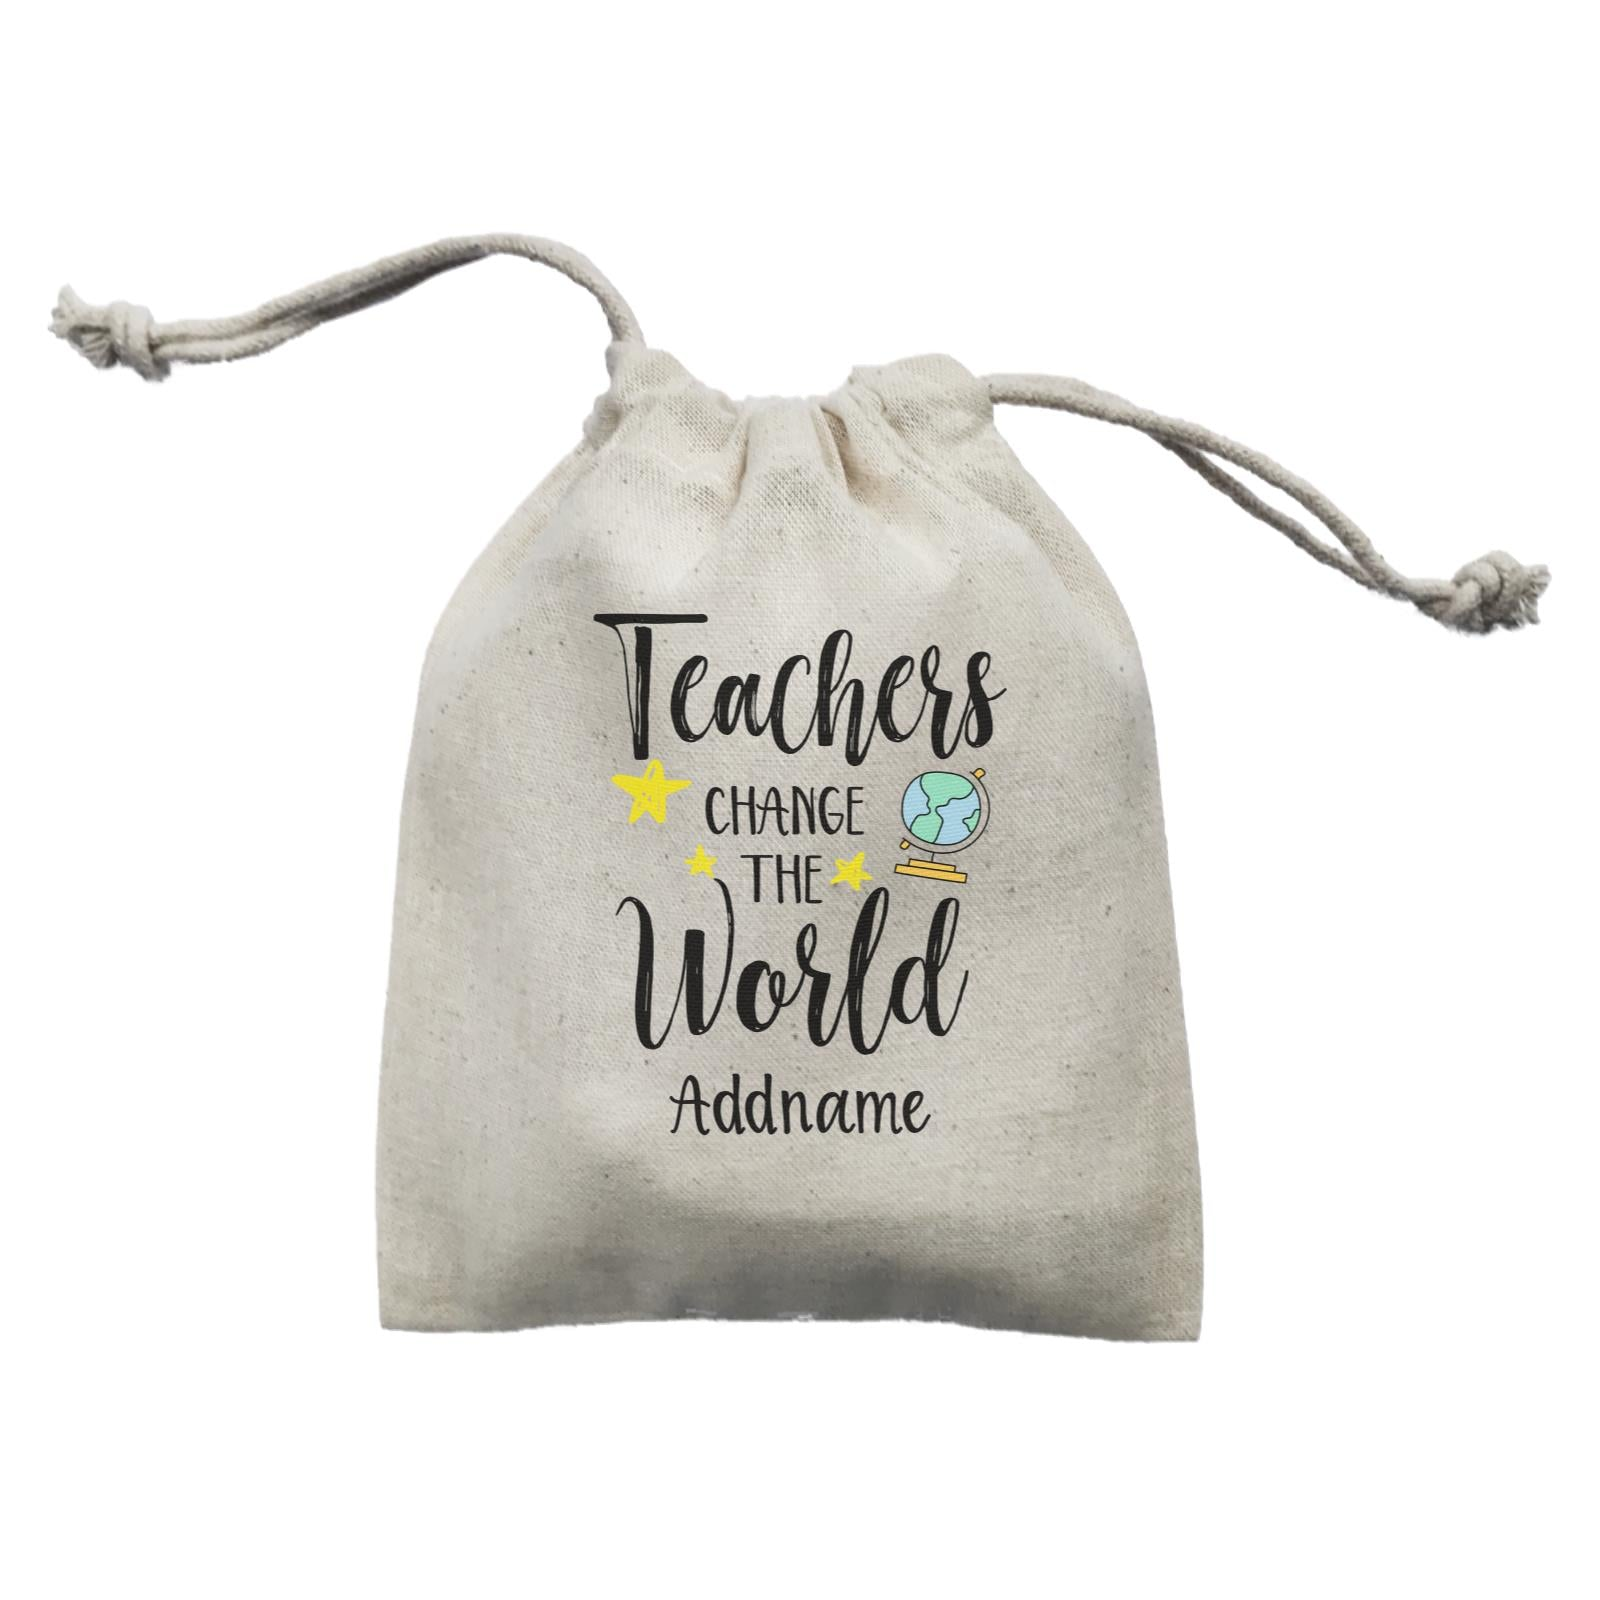 Teacher Quotes Teachers Change The World Addname Mini Accessories Mini Pouch